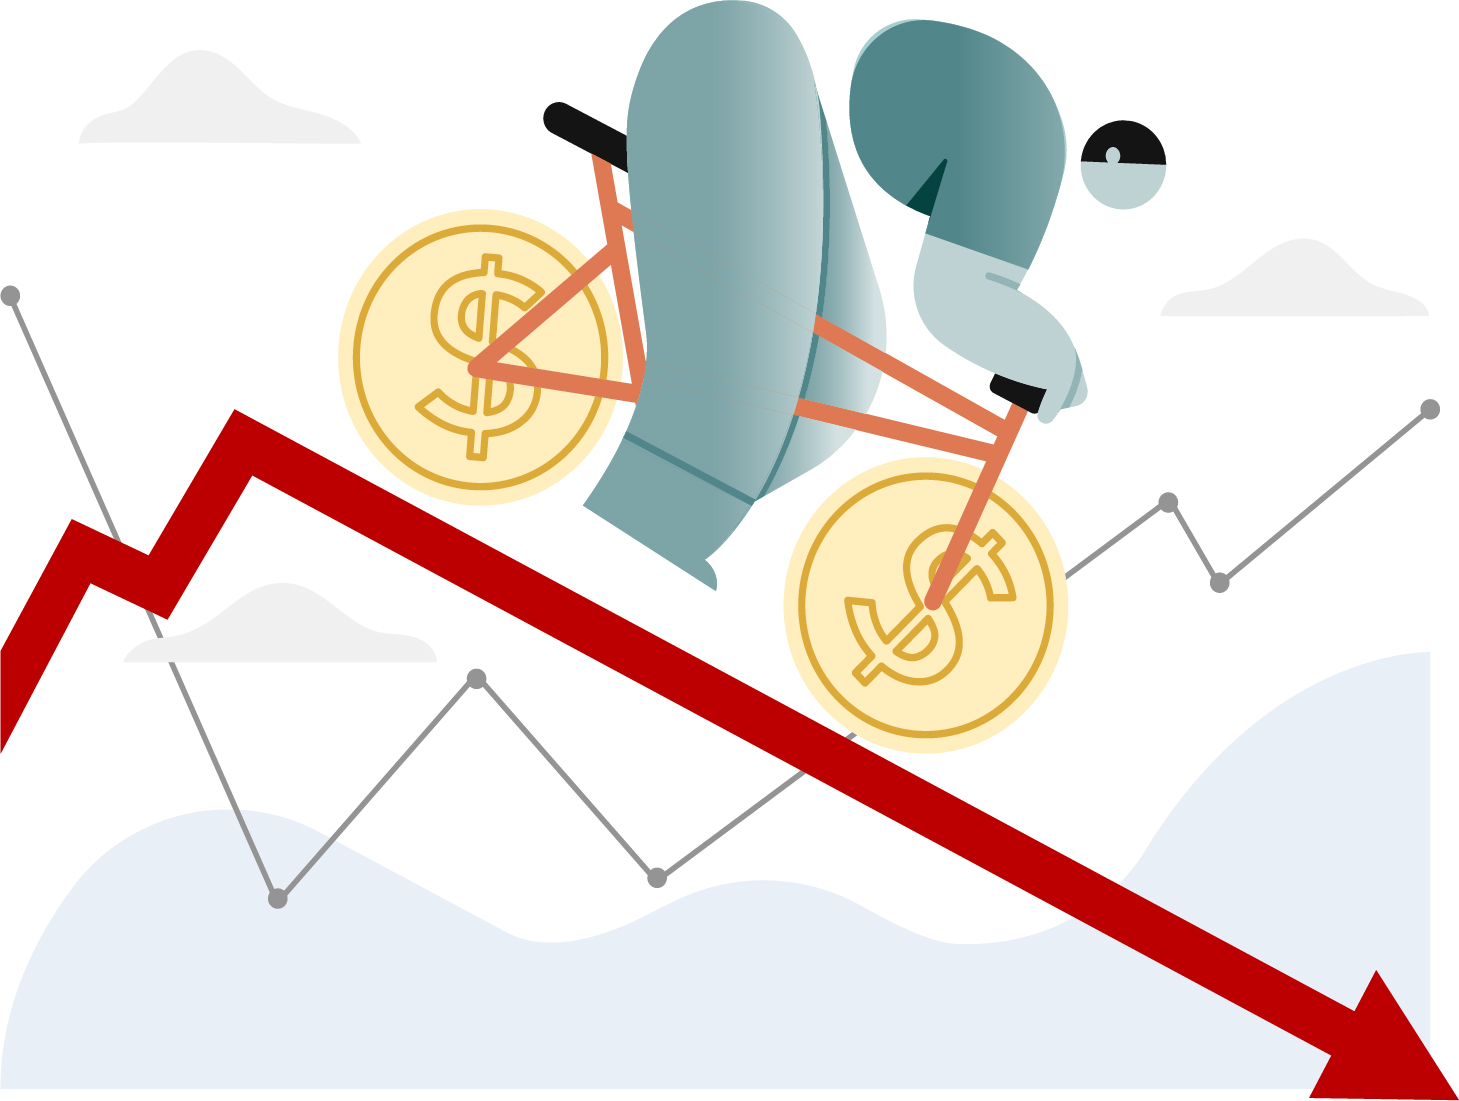 Illustration of bike rider riding down a line graph